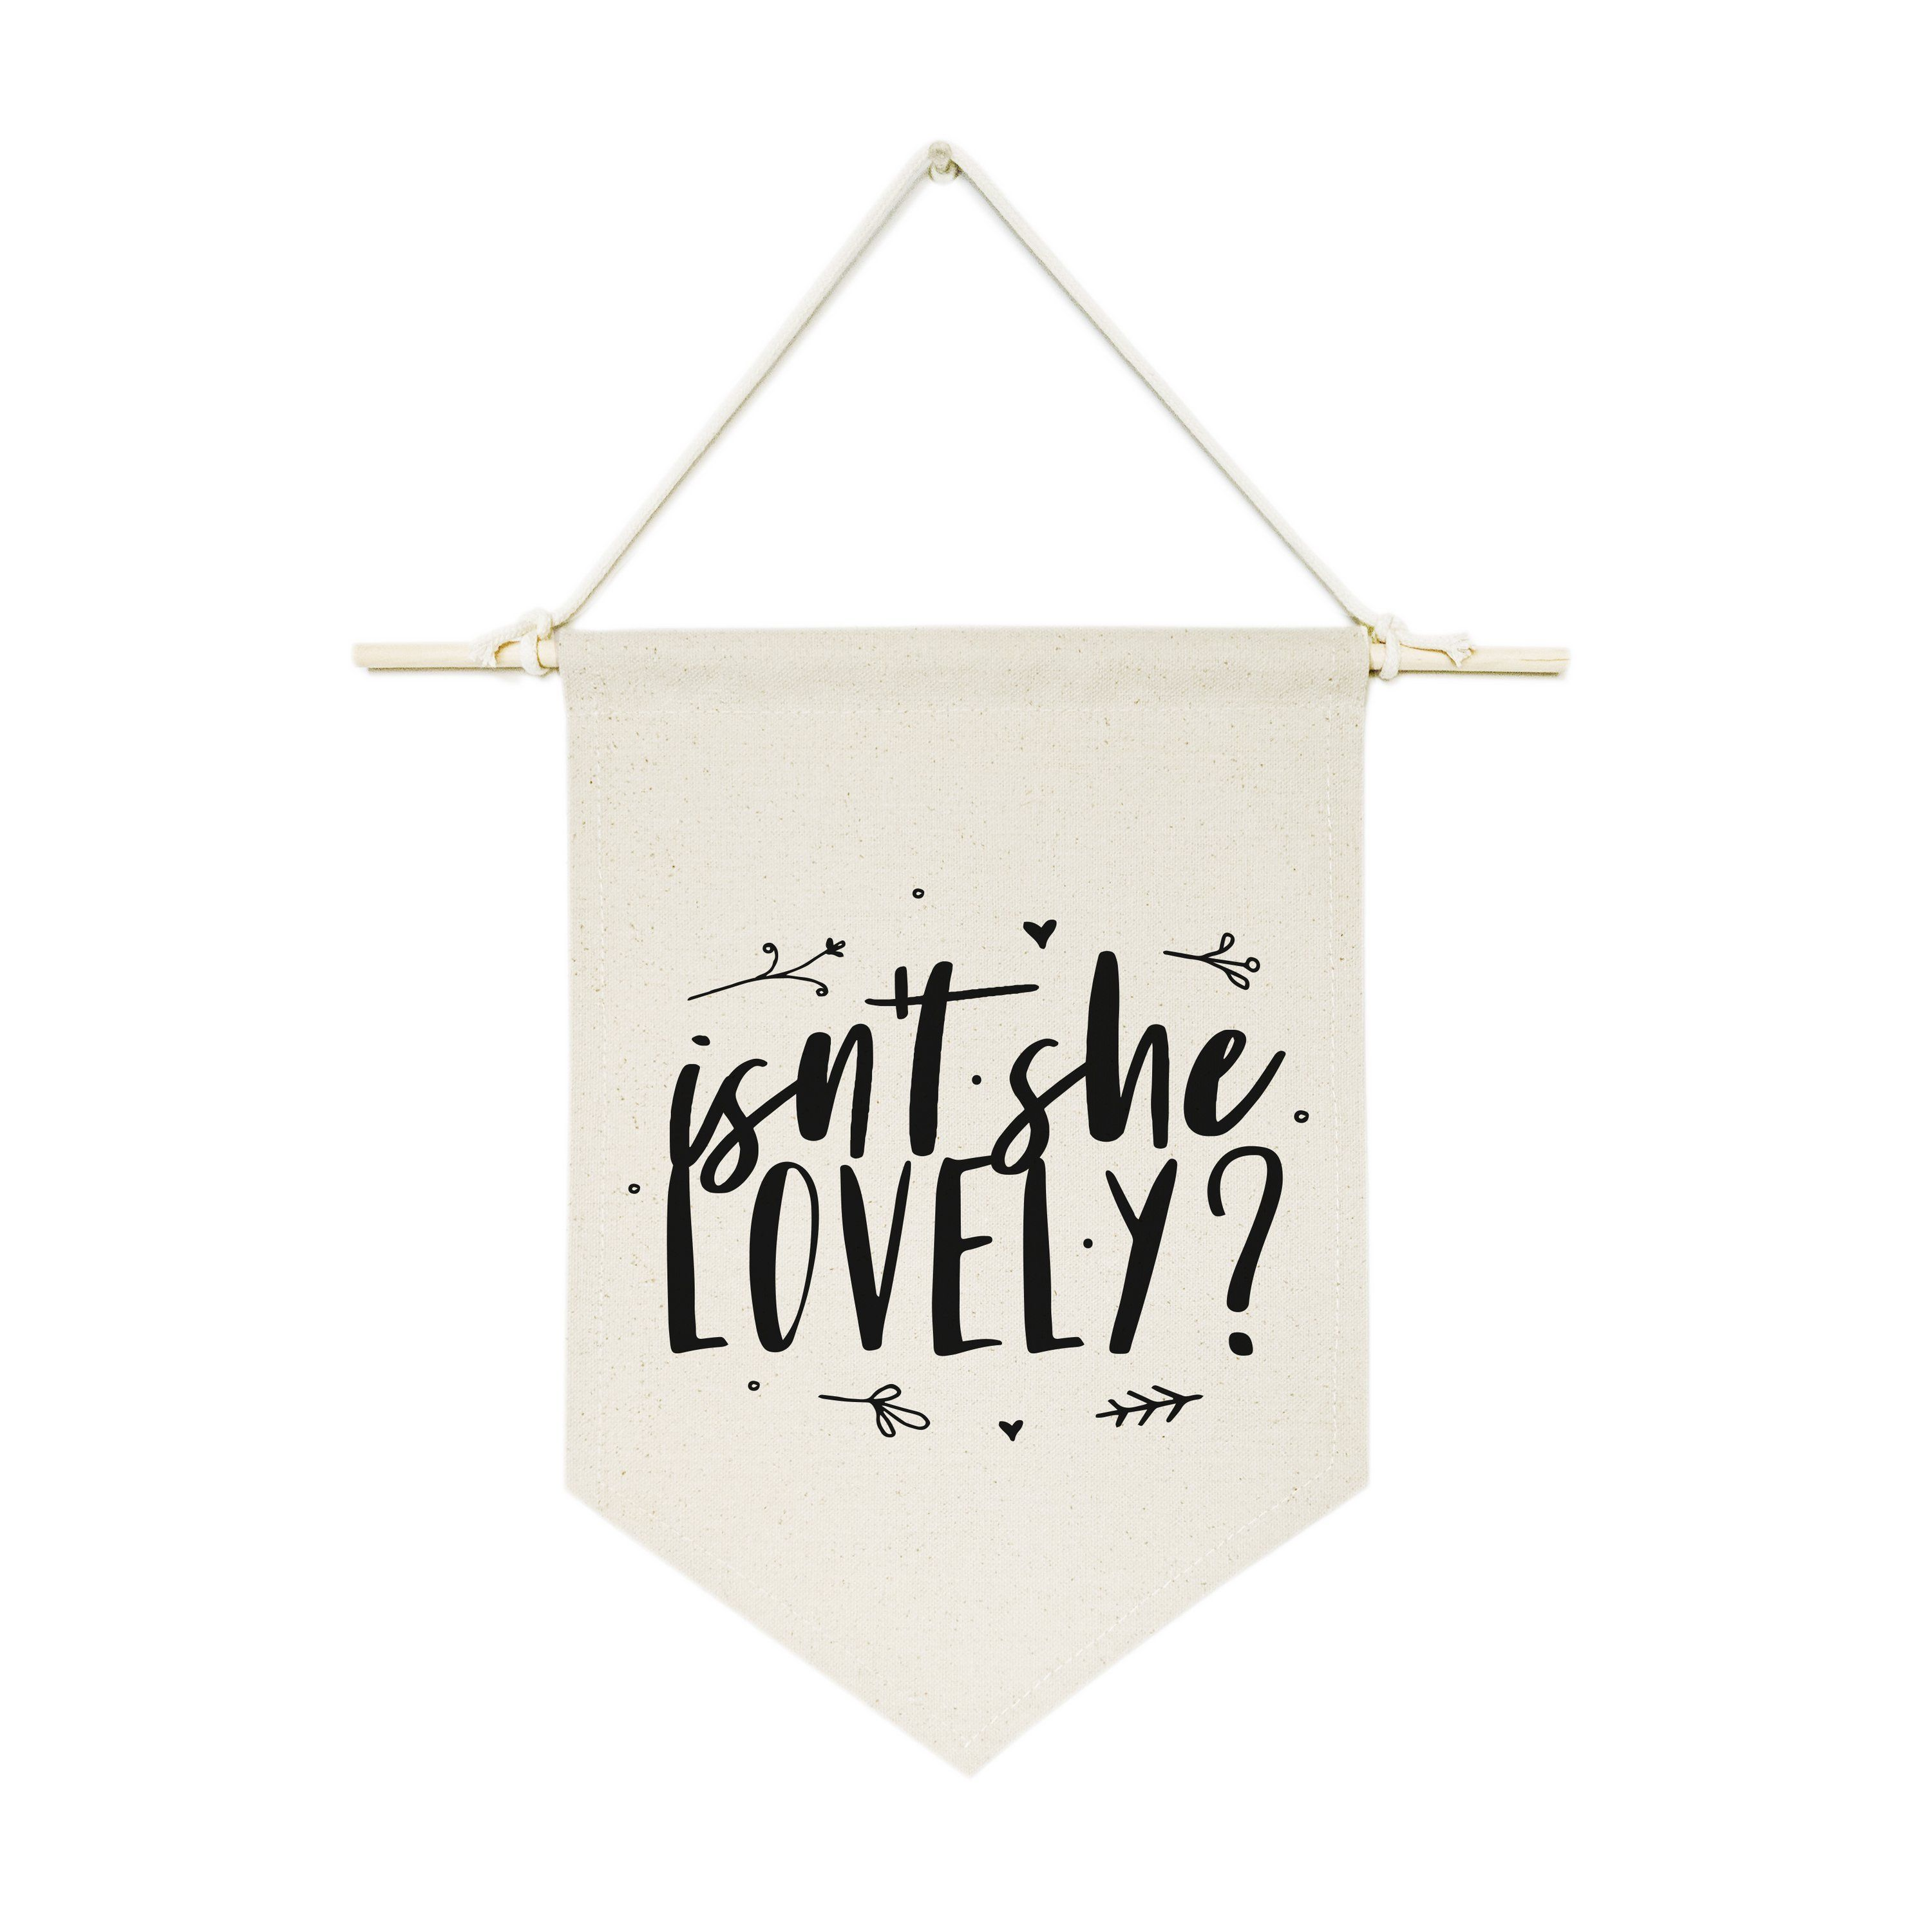 Isn't She Lovely? Hanging Wall Banner